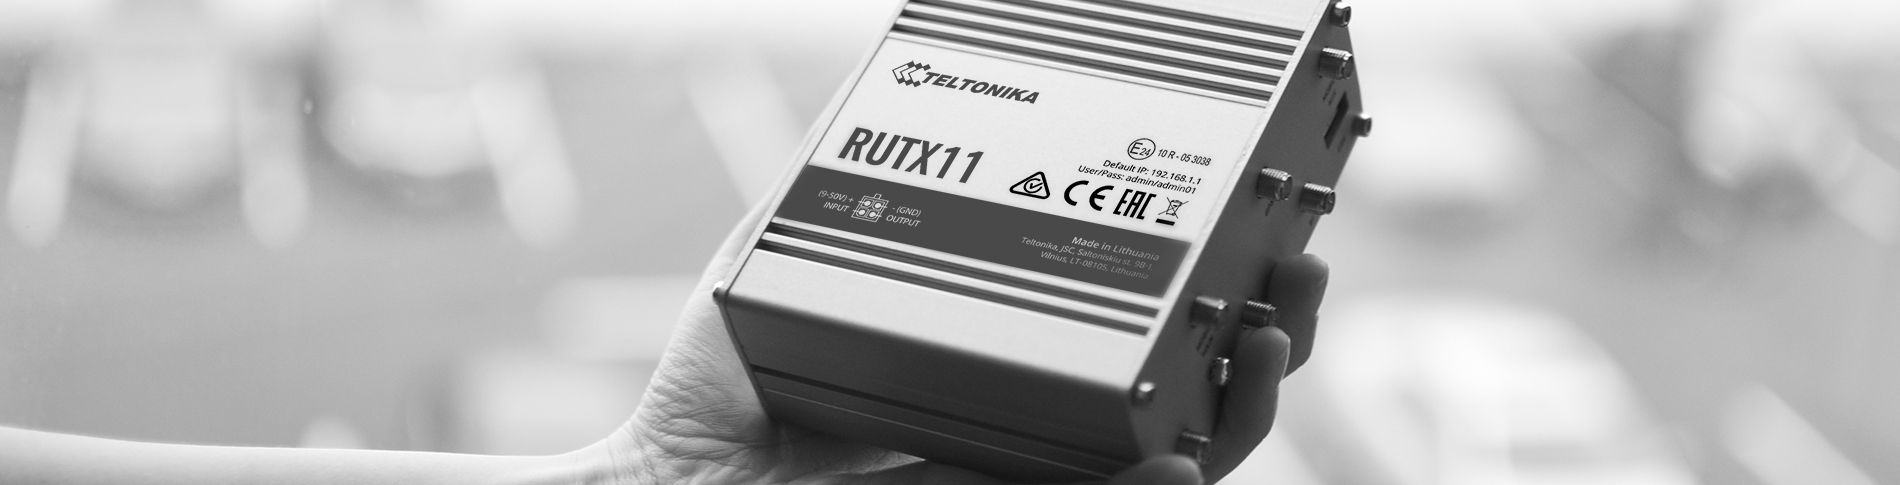 RUTX11 awarded RCM and E-Mark (E24) approvals!